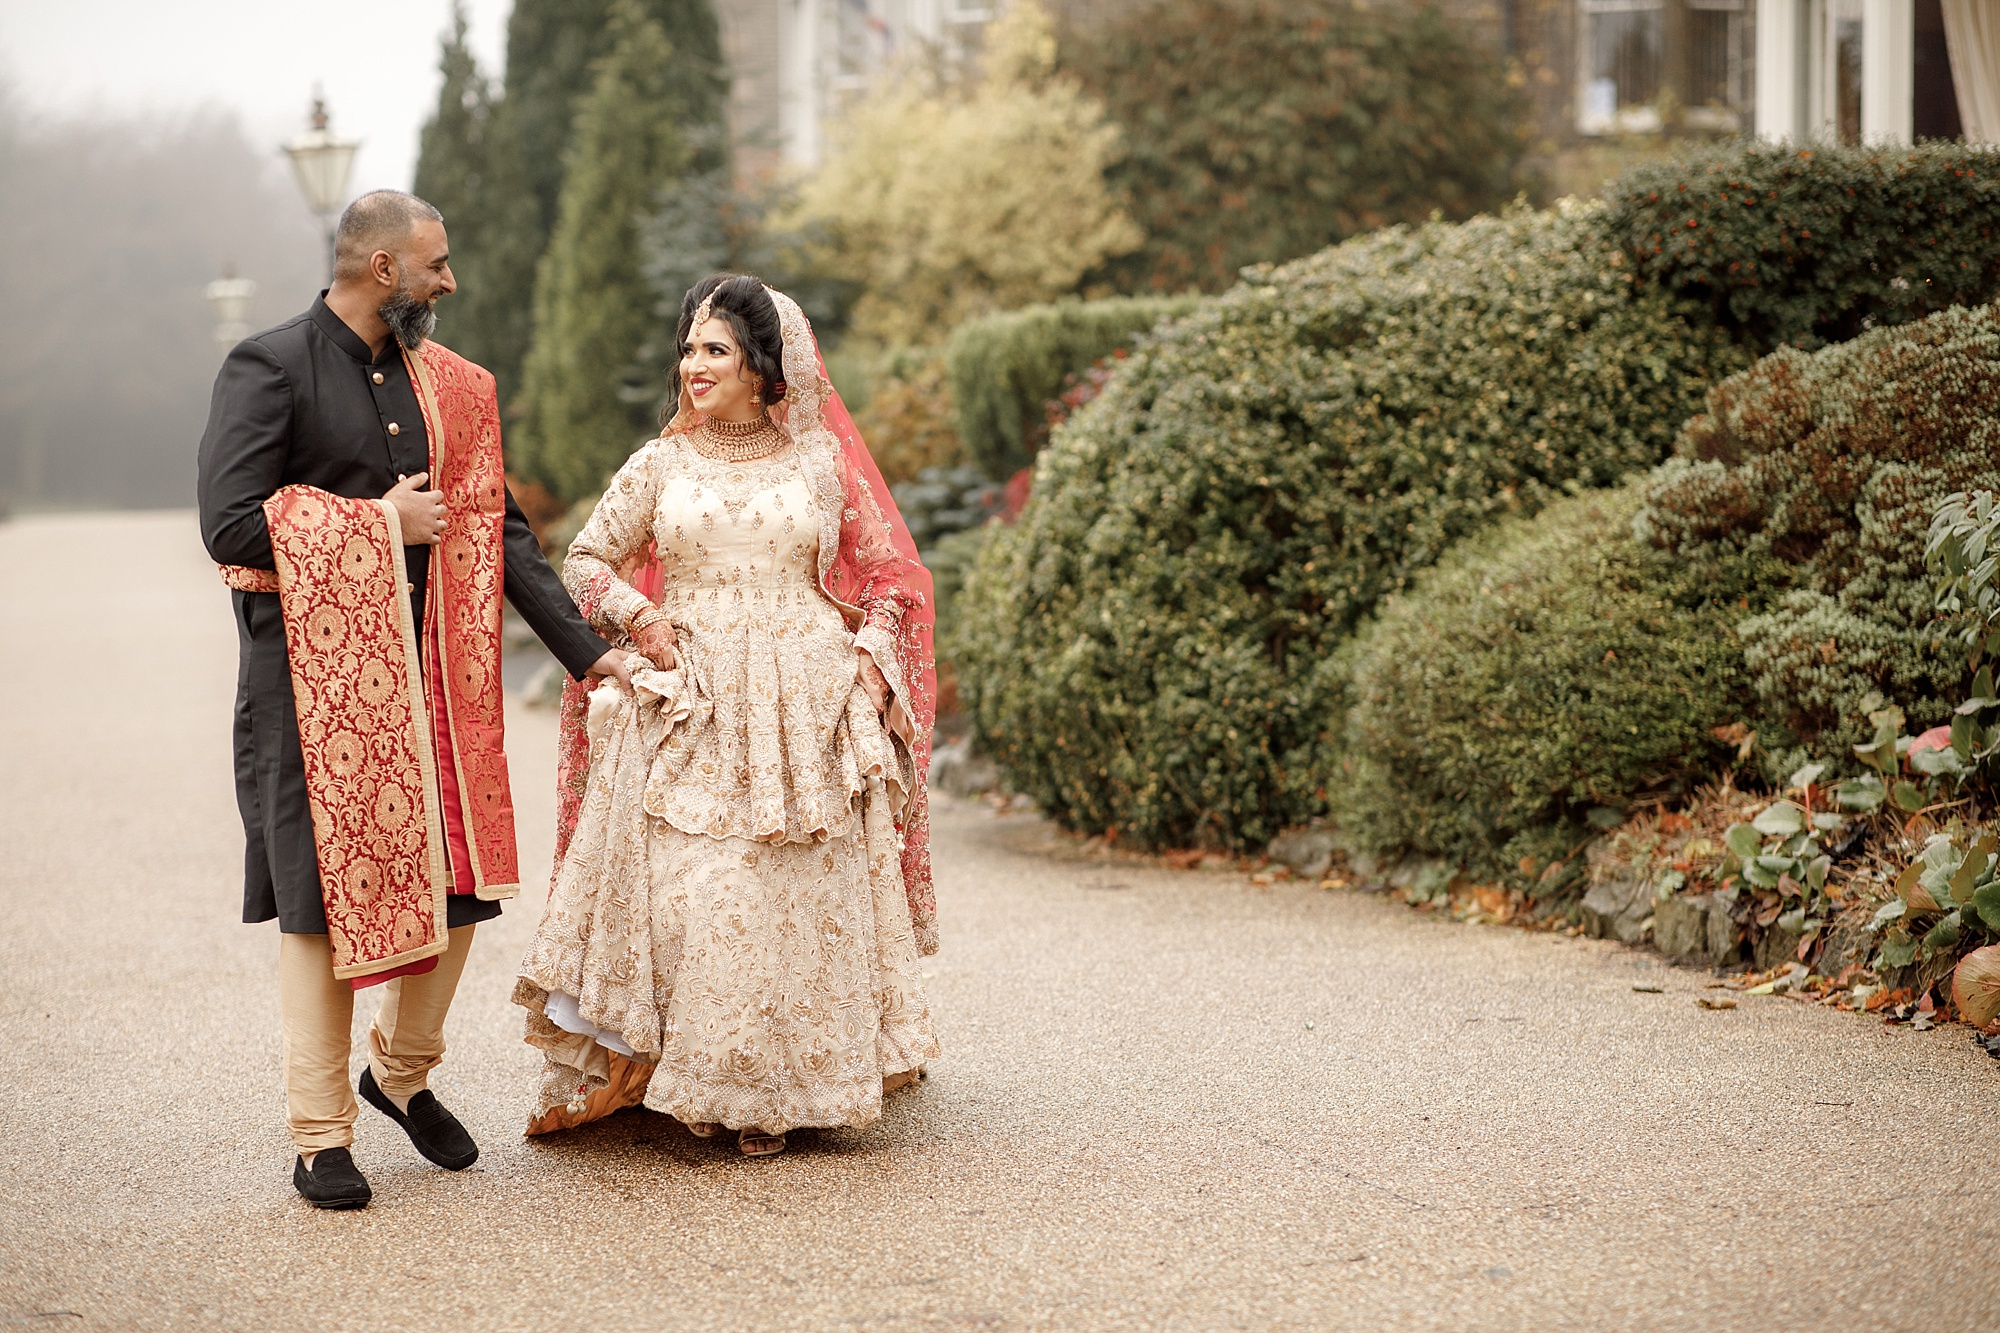 Pakistani Portrait Wedding photography at Devonshire Dome